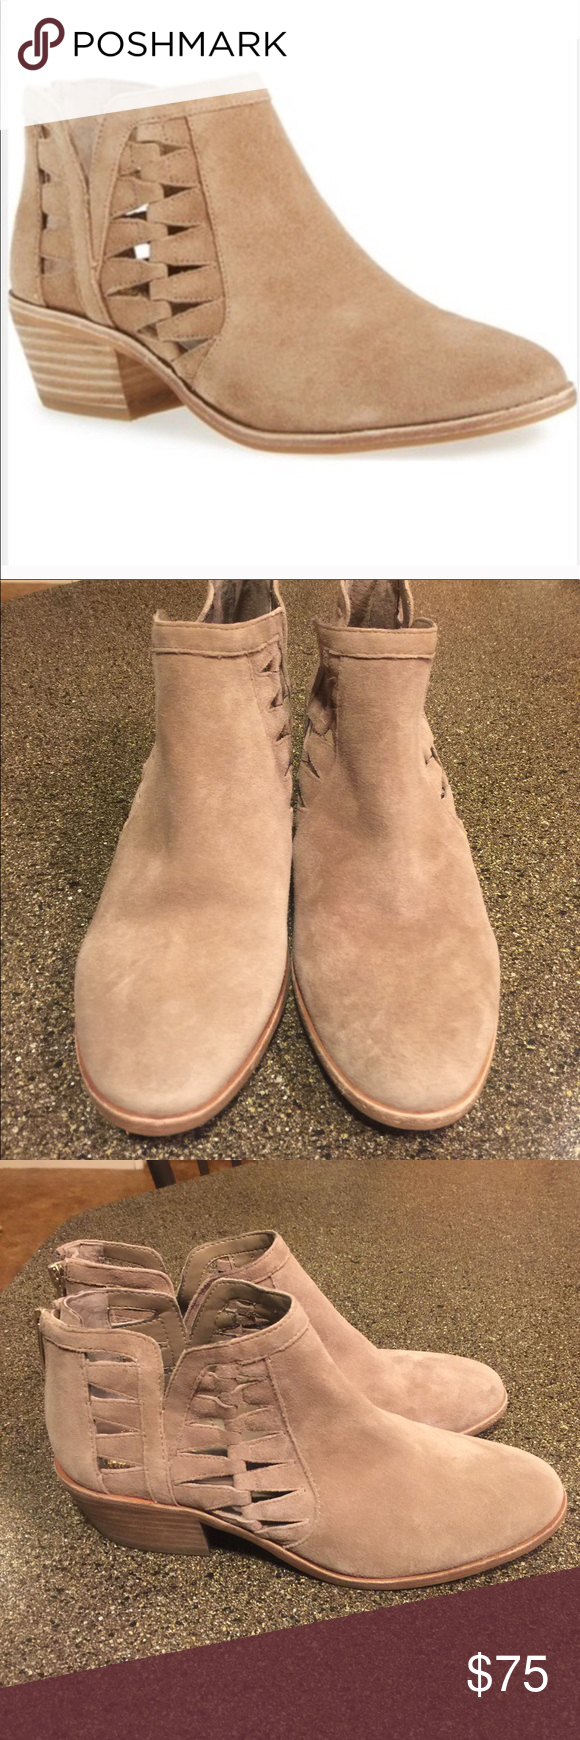 93896b780c1 Vince Camuto Peera Cutout Suede Booties Size 8.5 Vince Camuto Peera Cutout  Suede Booties Size 8.5. Gorgeous and like new! Vince Camuto Shoes Ankle  Boots   ...